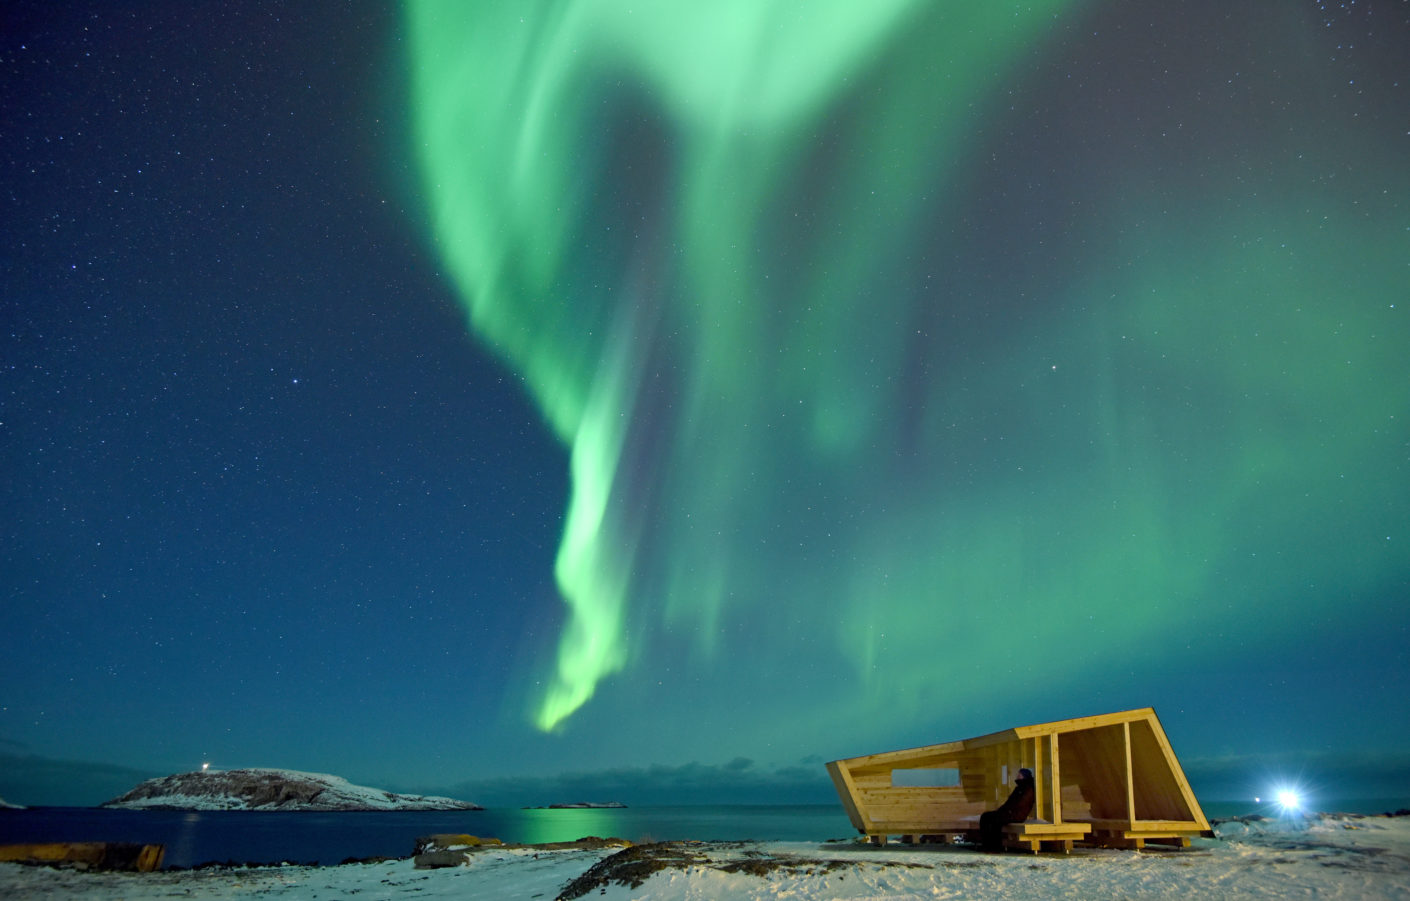 Dancing aurora borealis over the Hasselnes bird hide.